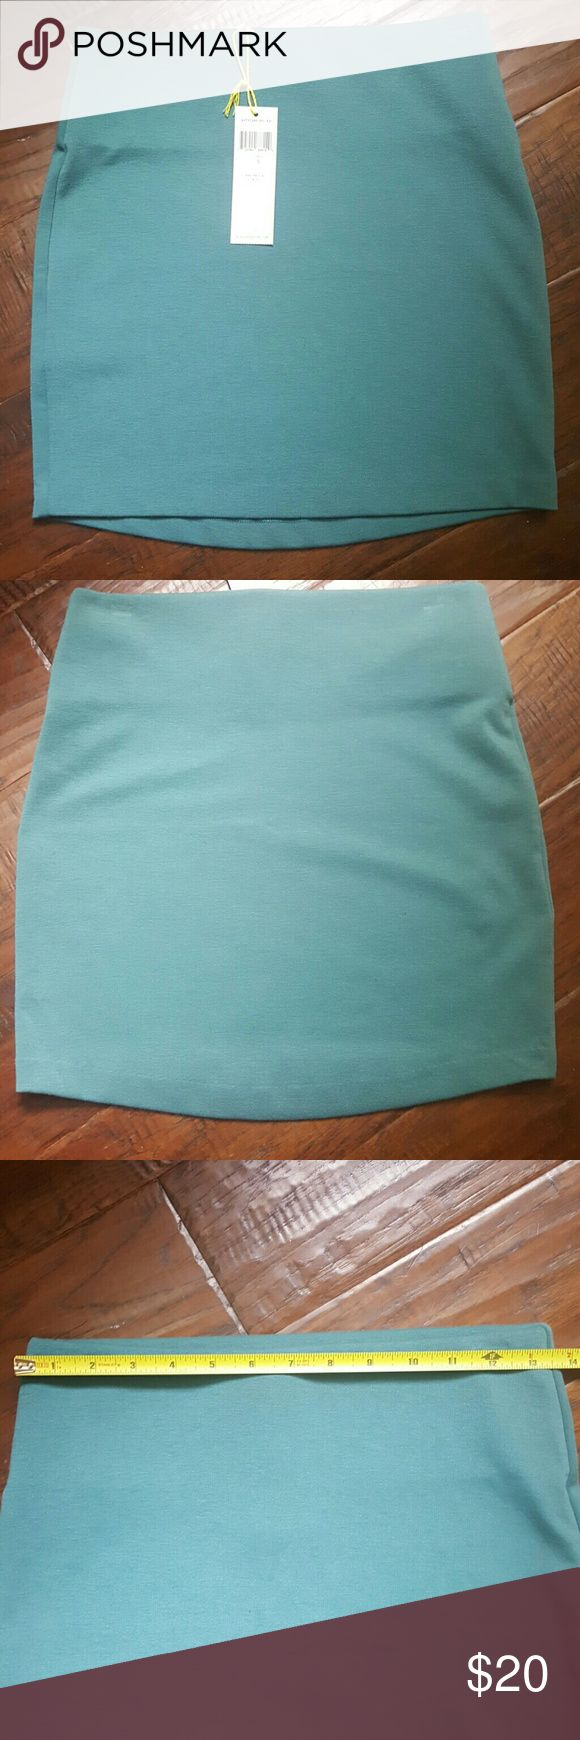 "NWT BCBGeneration pullover skirt Pullover skirt by BCBGeneration Beautiful sage color Measures 15.25"" long 98% polyester 2% spandex BCBGeneration Skirts Mini"